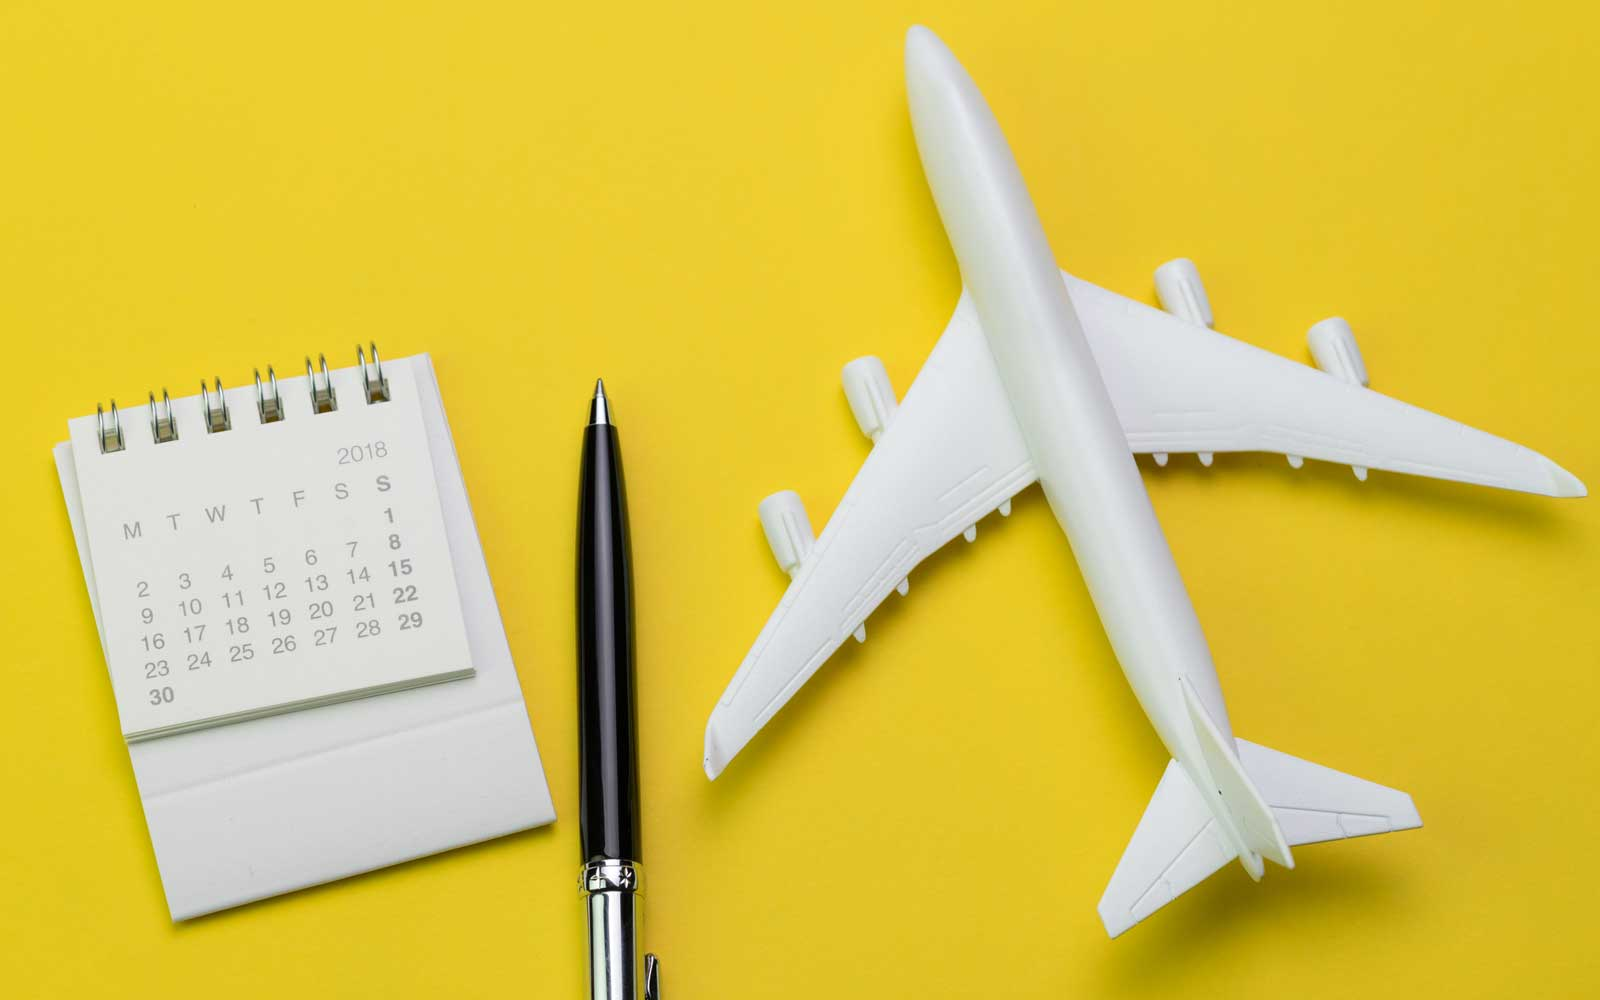 Still life of 2018 calendar, pen, and toy plane on sunny yellow background